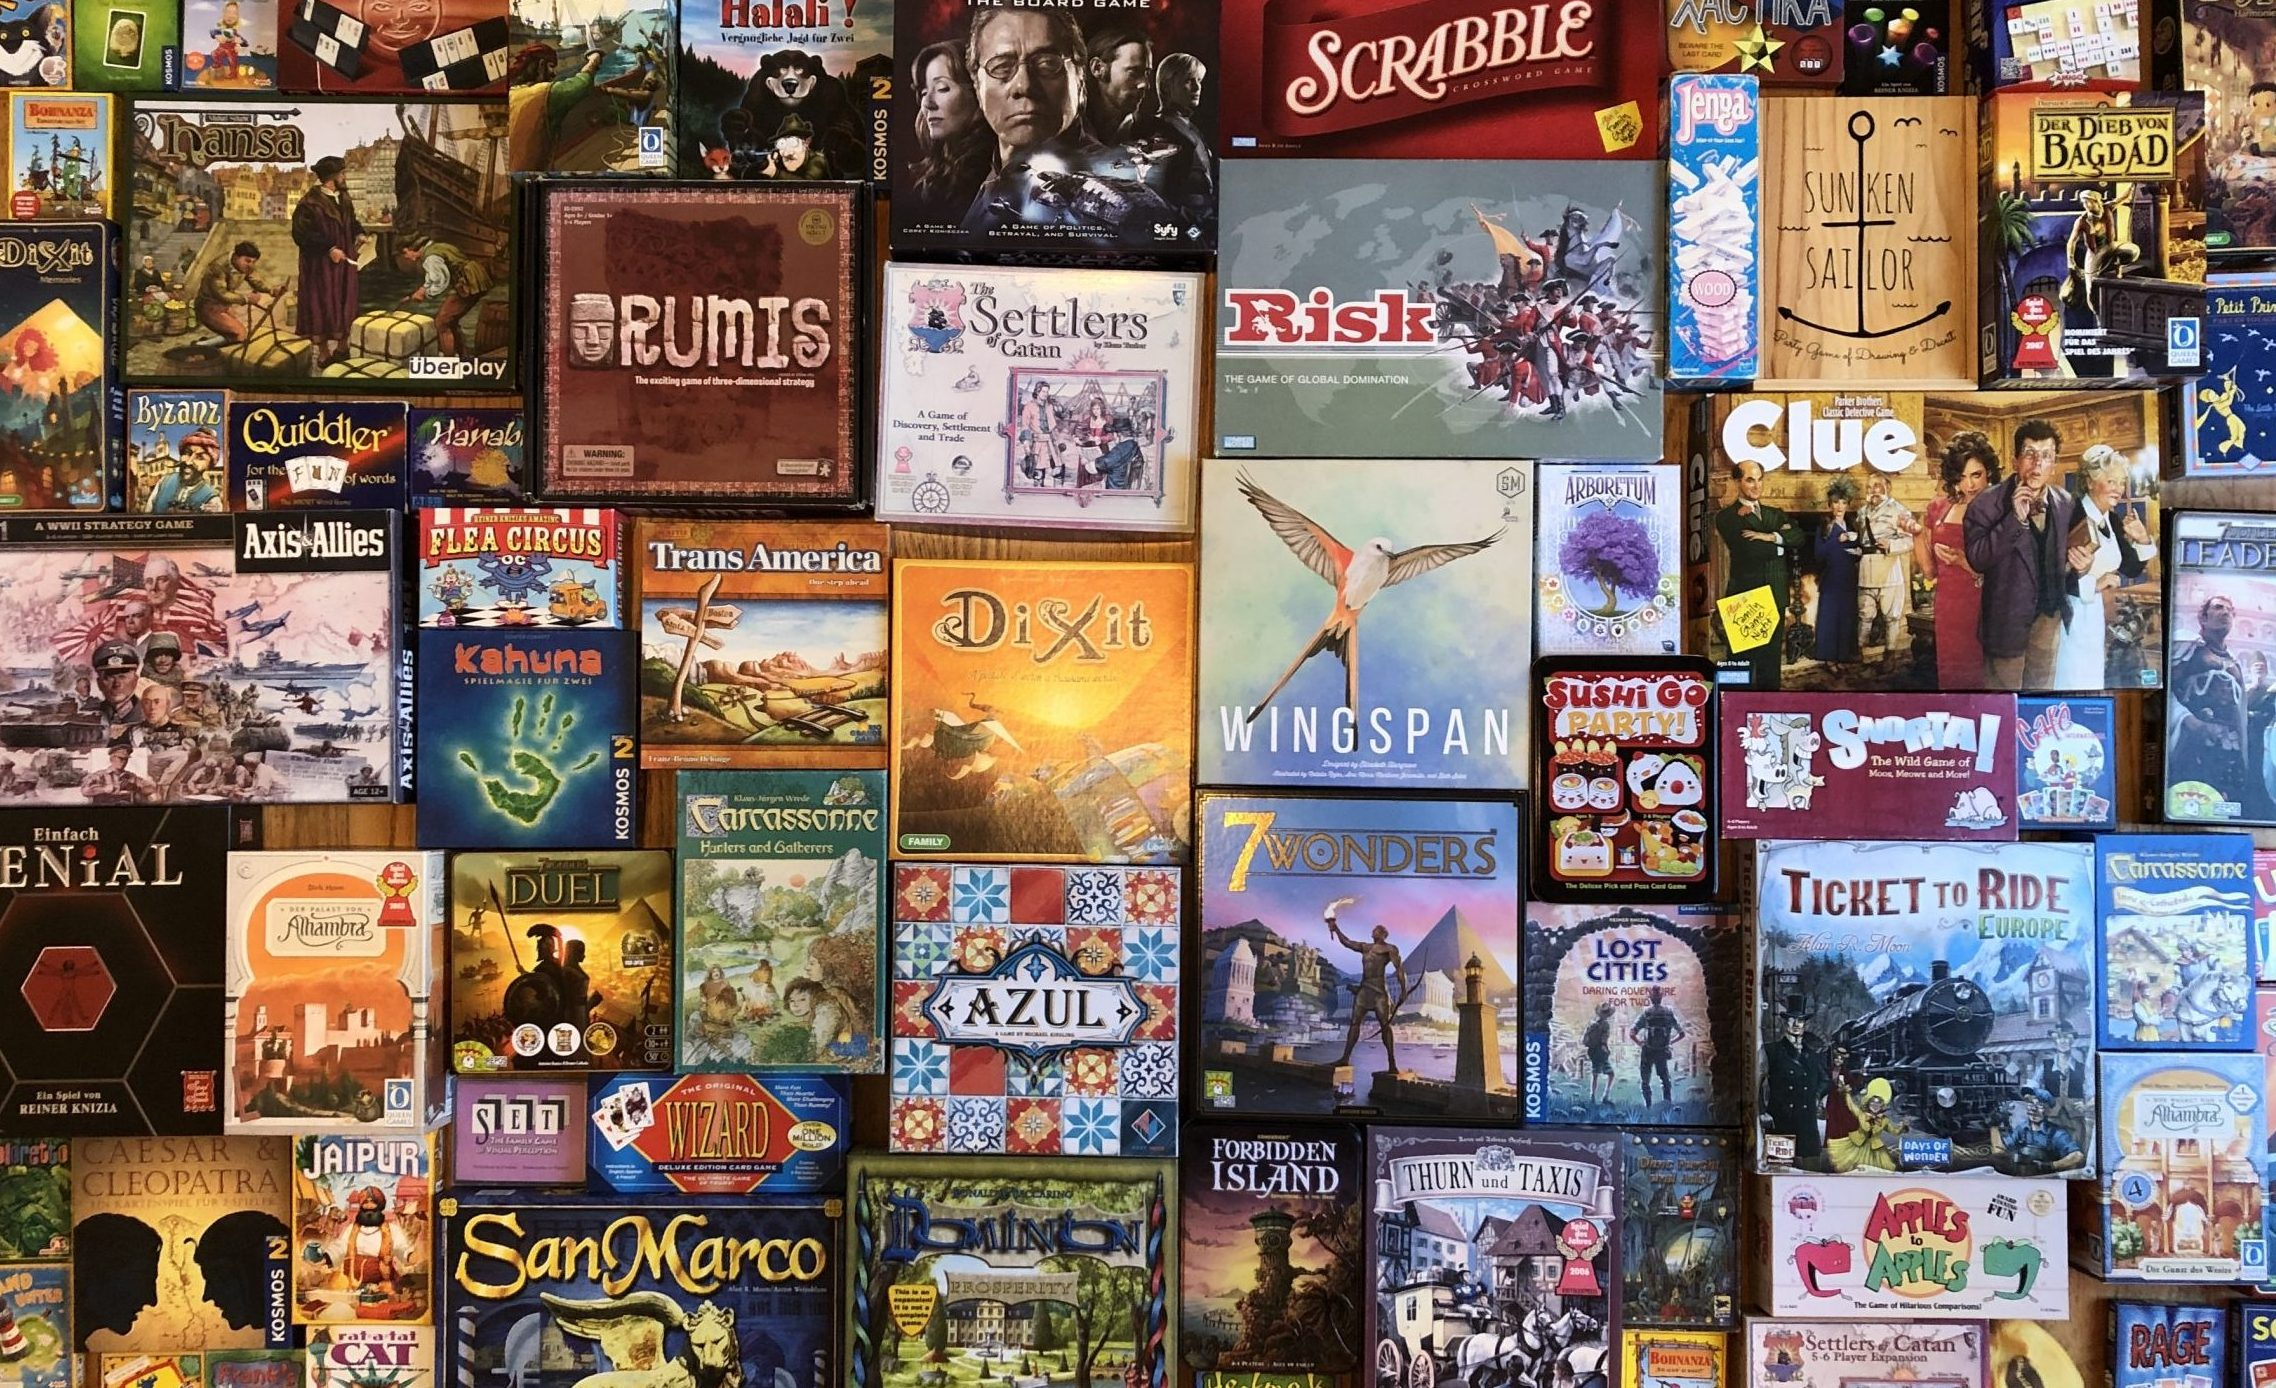 Mosaic of board games, including Azul, Wingspan, Jaipur, Ticket to Ride, 7 Wonders, Alhambra, Dixit, Carcassone, Lost Cities and Bohnanza